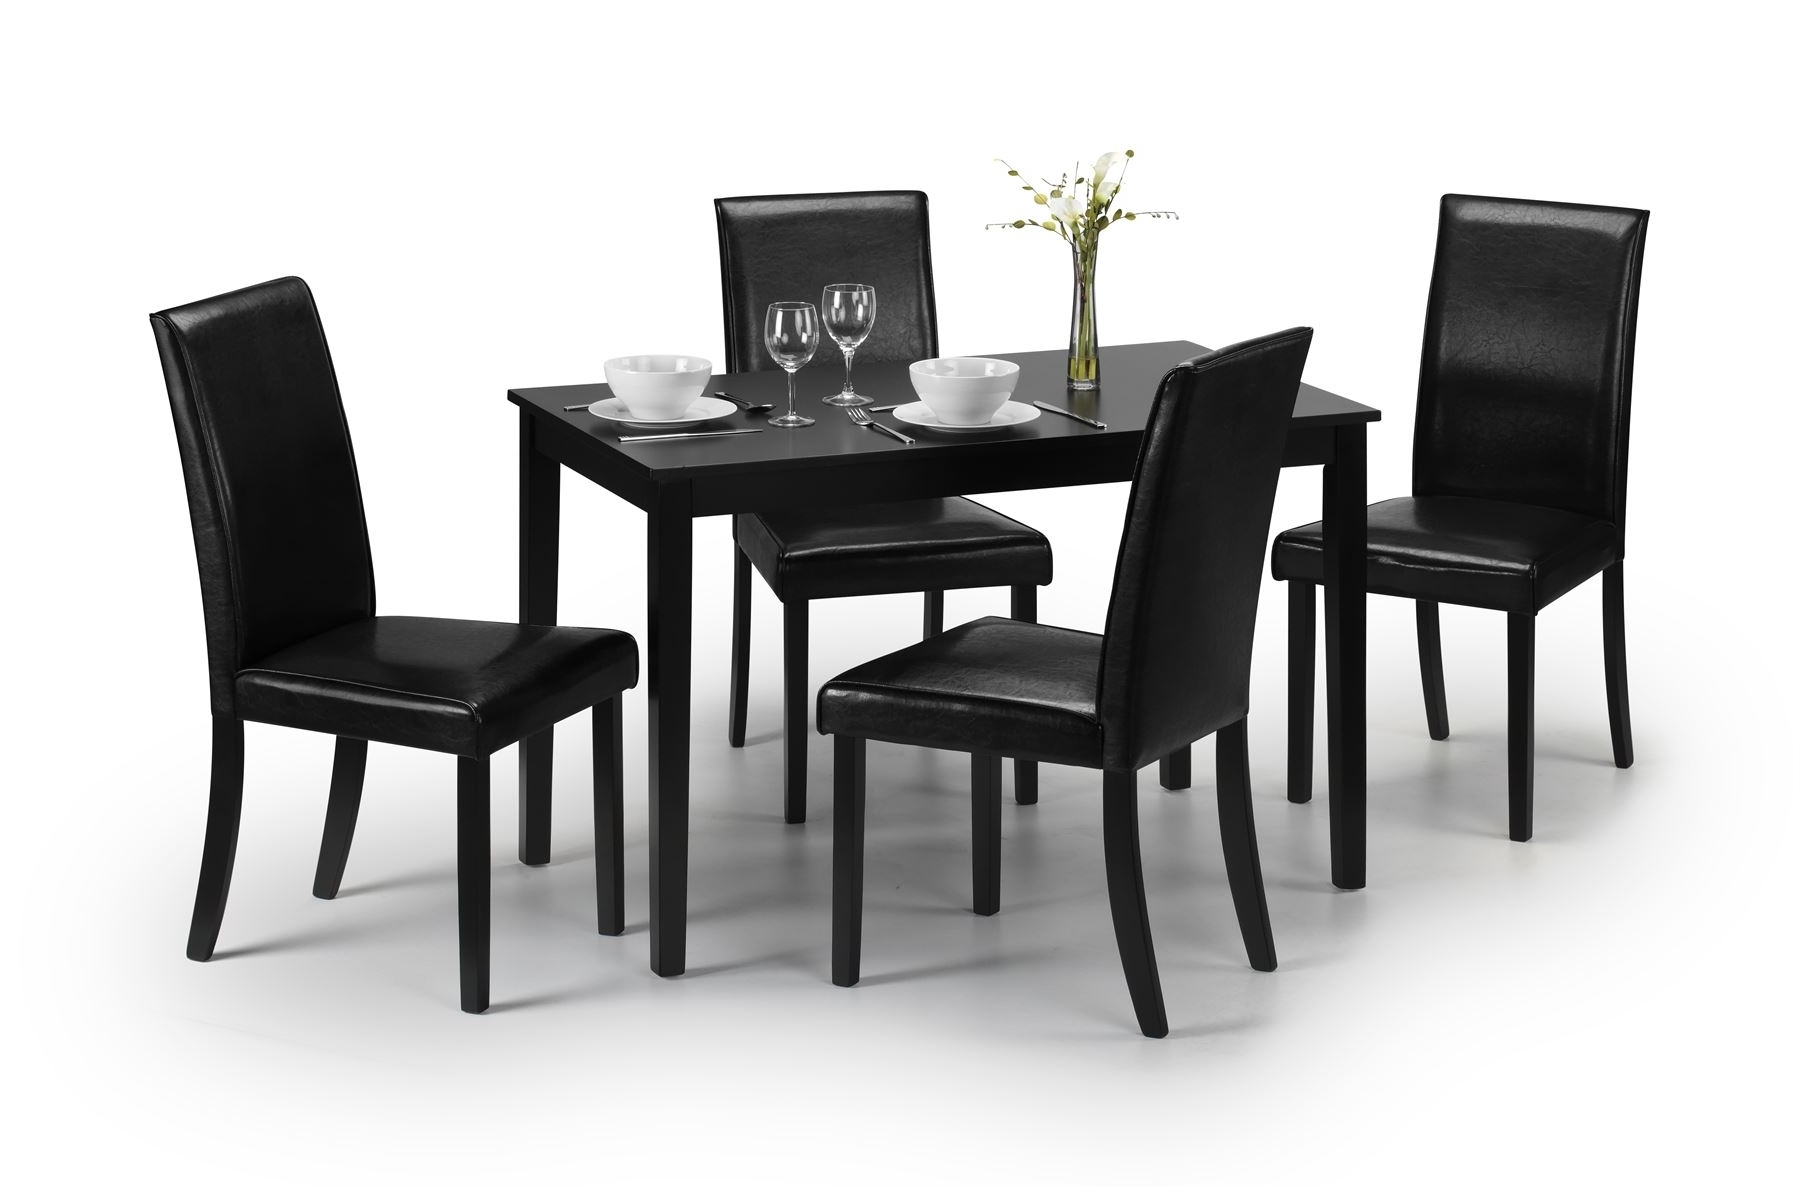 Hudson Dining Tables And Chairs Regarding Current Julian Bowen Hudson Wood Black Dining Table With 4 Faux Leather (View 6 of 25)